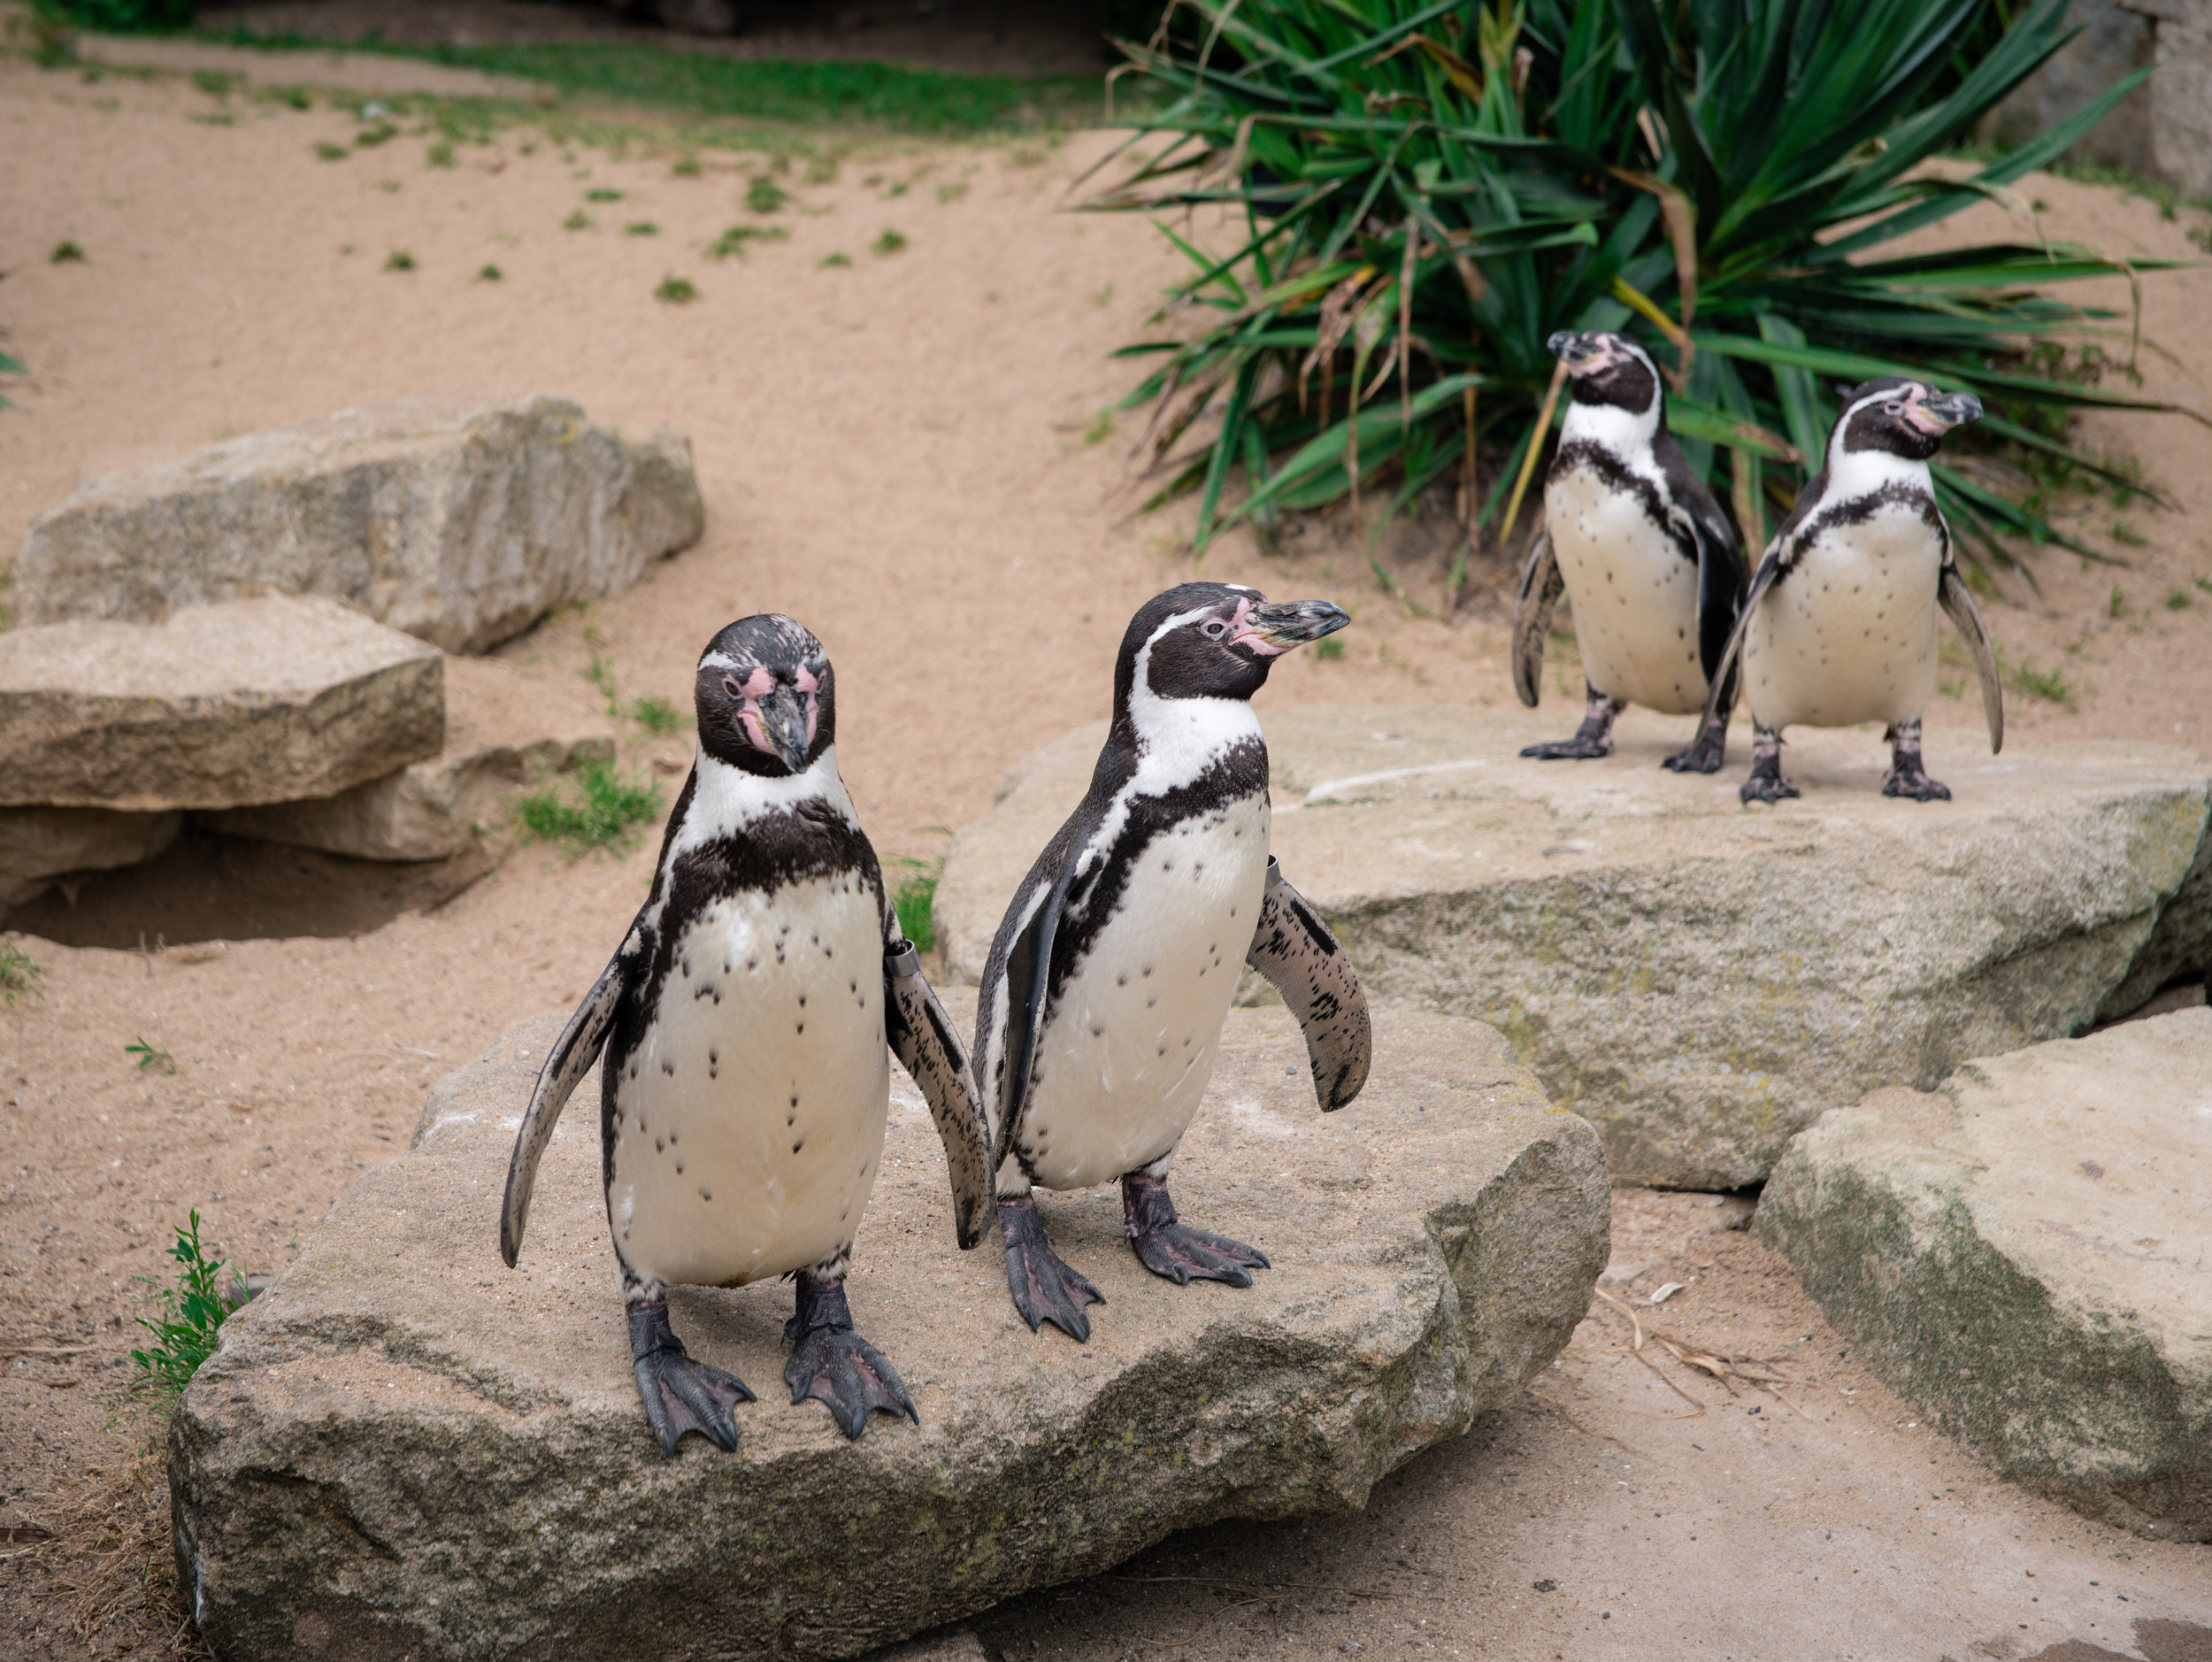 The mating penguins are the ones in the back! (Not the picture of course haha)